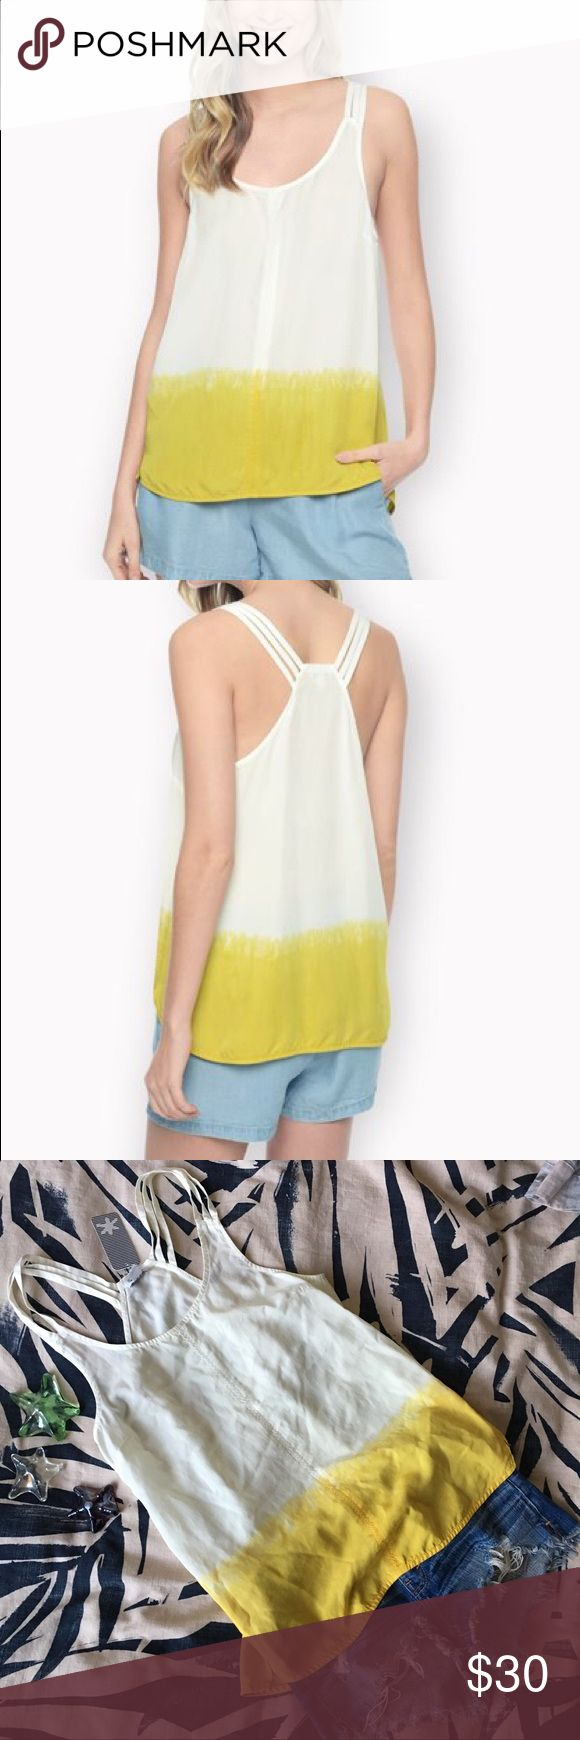 NEW 🌼 Splendid Blazing Yellow/White Dip Dye Top **NWT** Splendid Blazing Yellow/White Dip Dye Top - Size: Small - Materials: 100% Tencel - Super cute tank for summer with a simple Ombré dye and racerbavk straps - It's loose fitting and flowy- Very comfortable to wear and goes nicely with a pair of shorts 💛💛 Splendid Tops Blouses